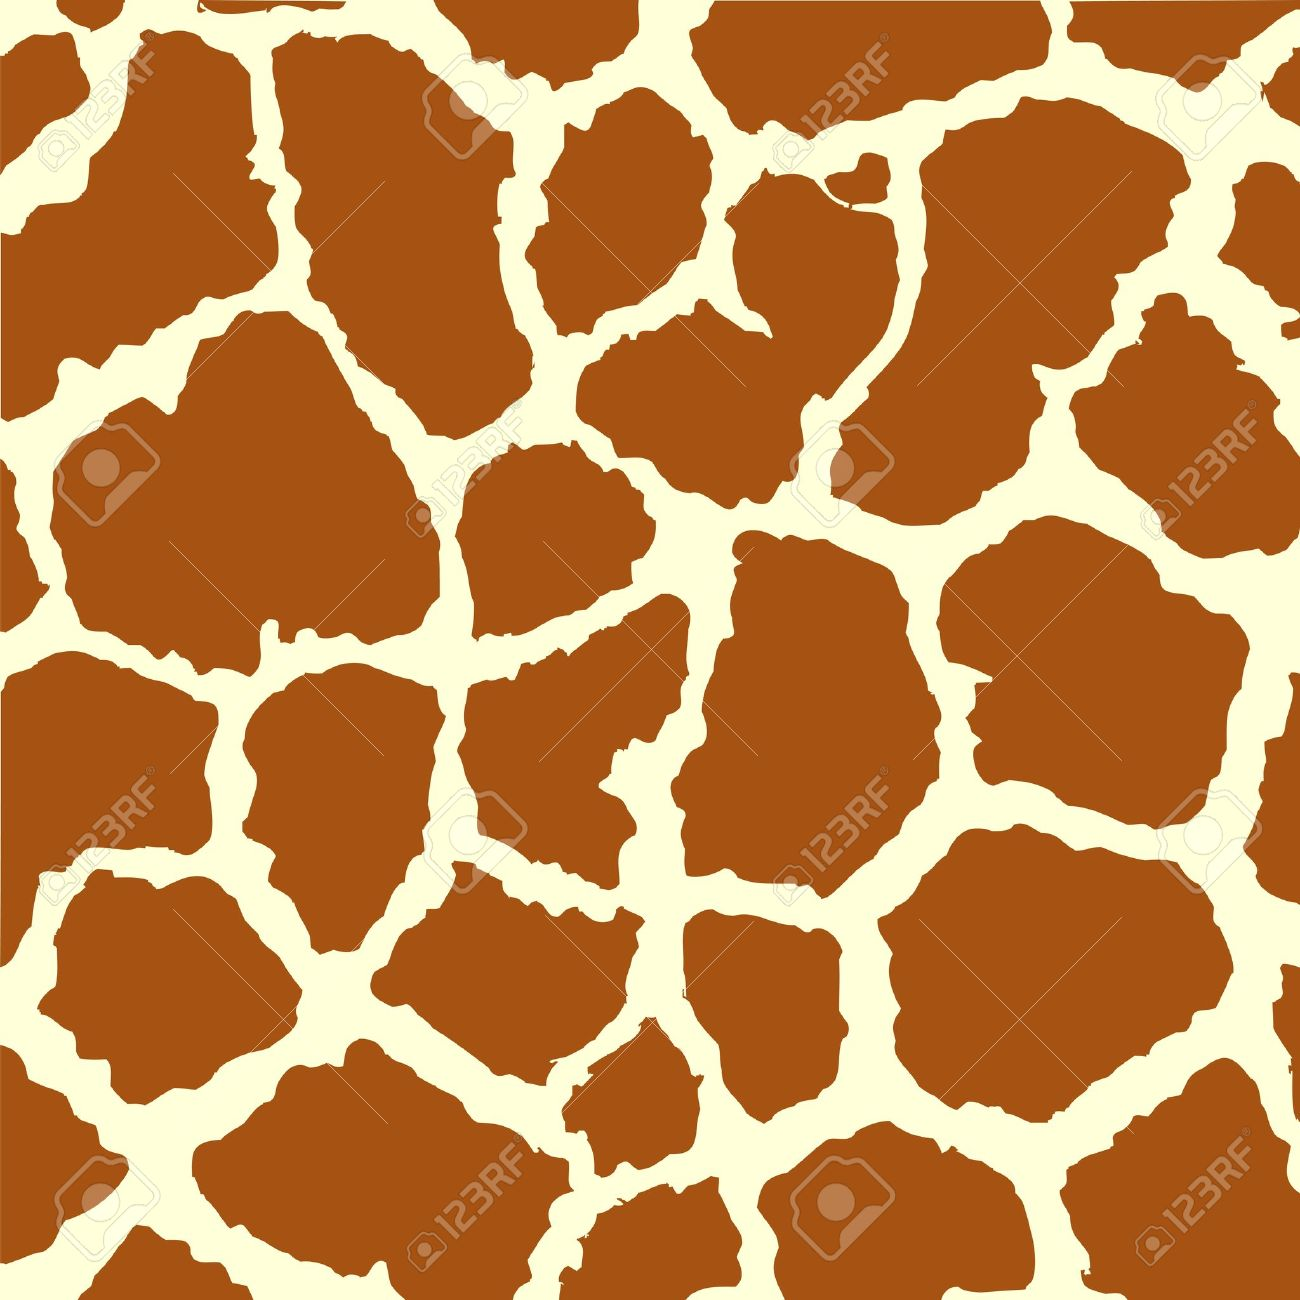 animal print seamless spotted giraffe skin background - Animal Pictures To Print Free